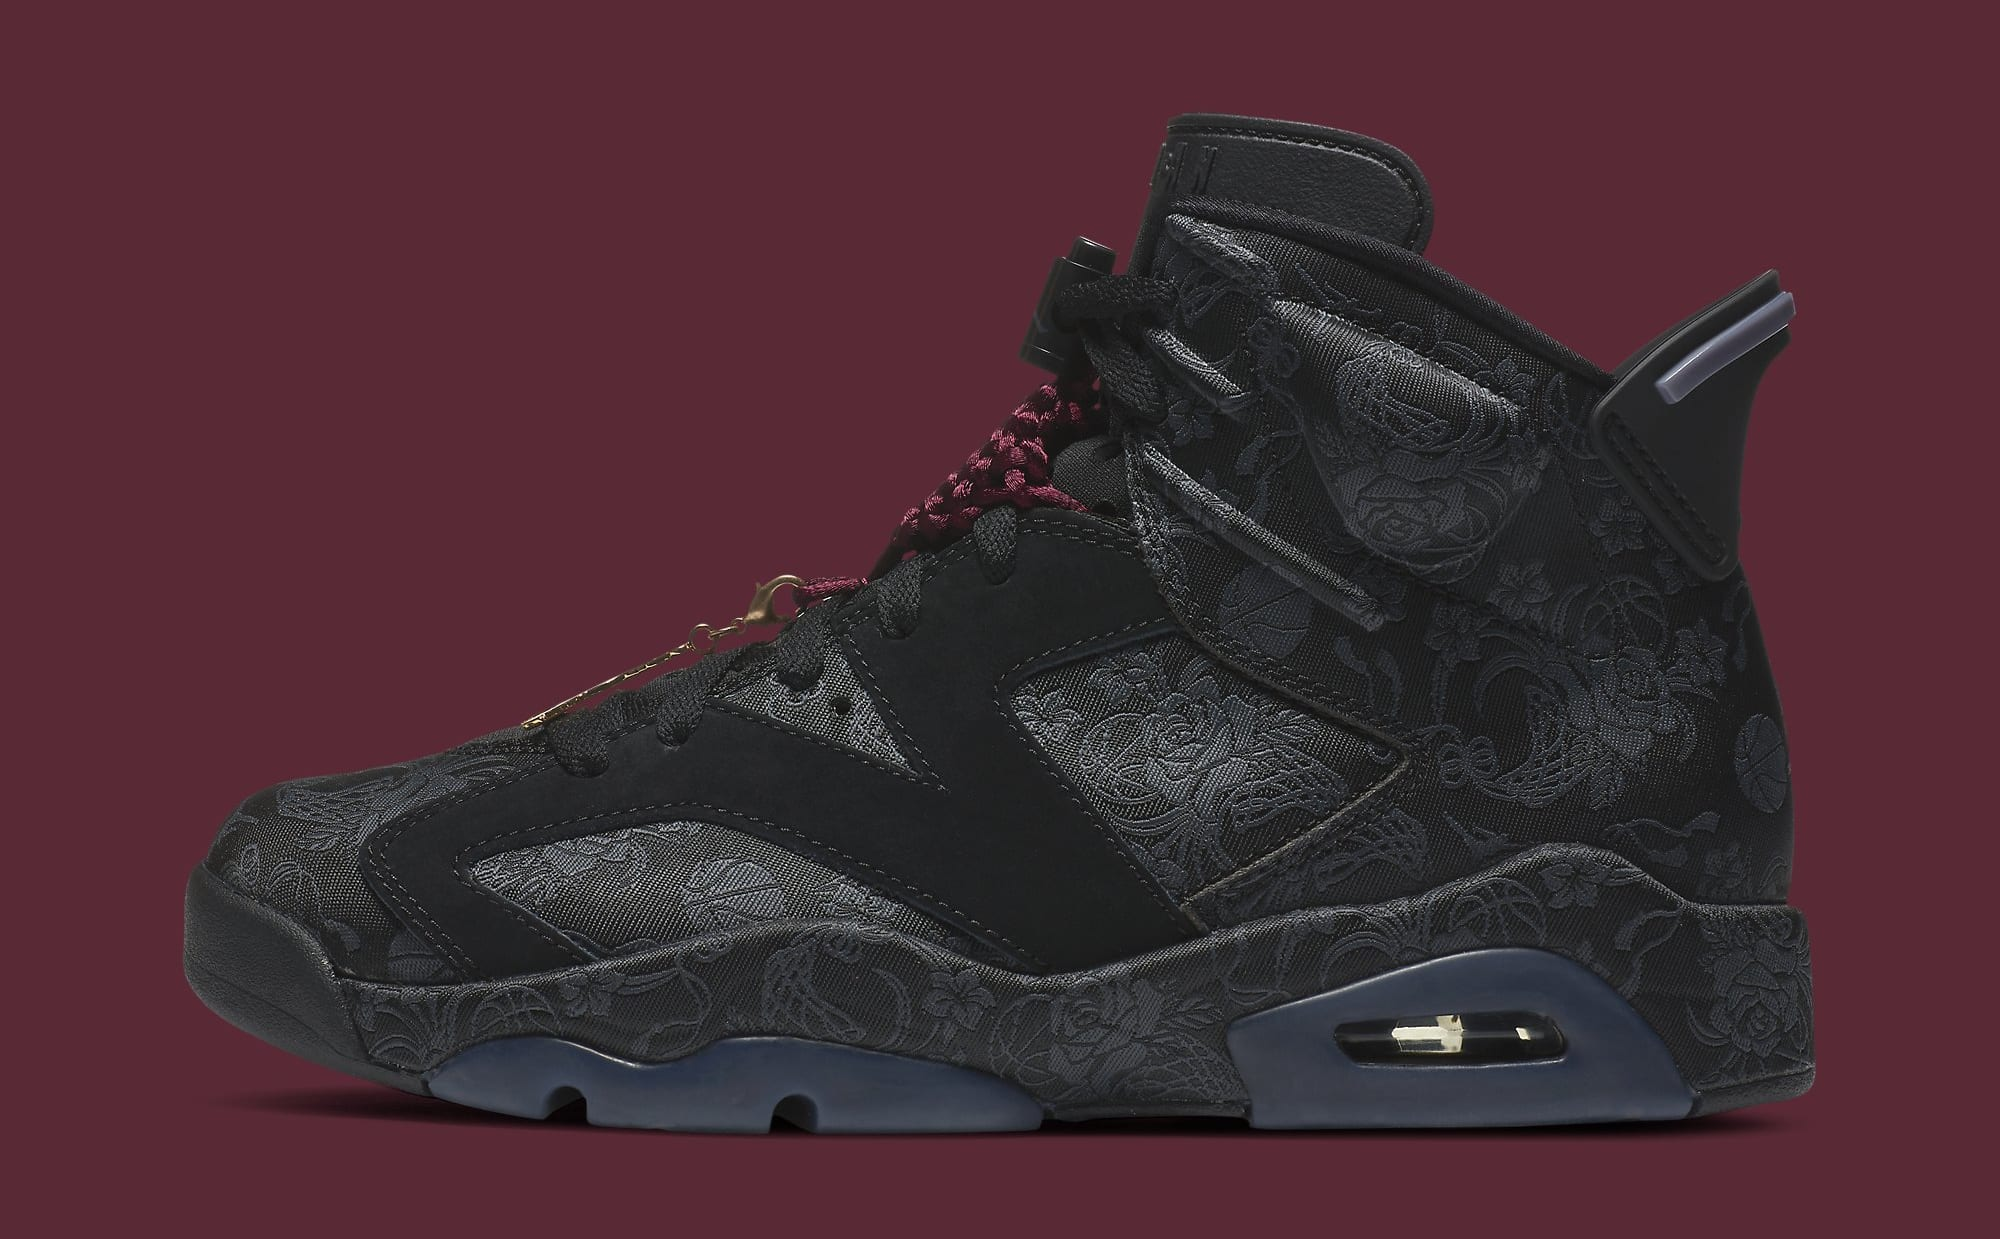 Air Jordan 6 Retro 'Singles' Day' DB9818-001 Lateral